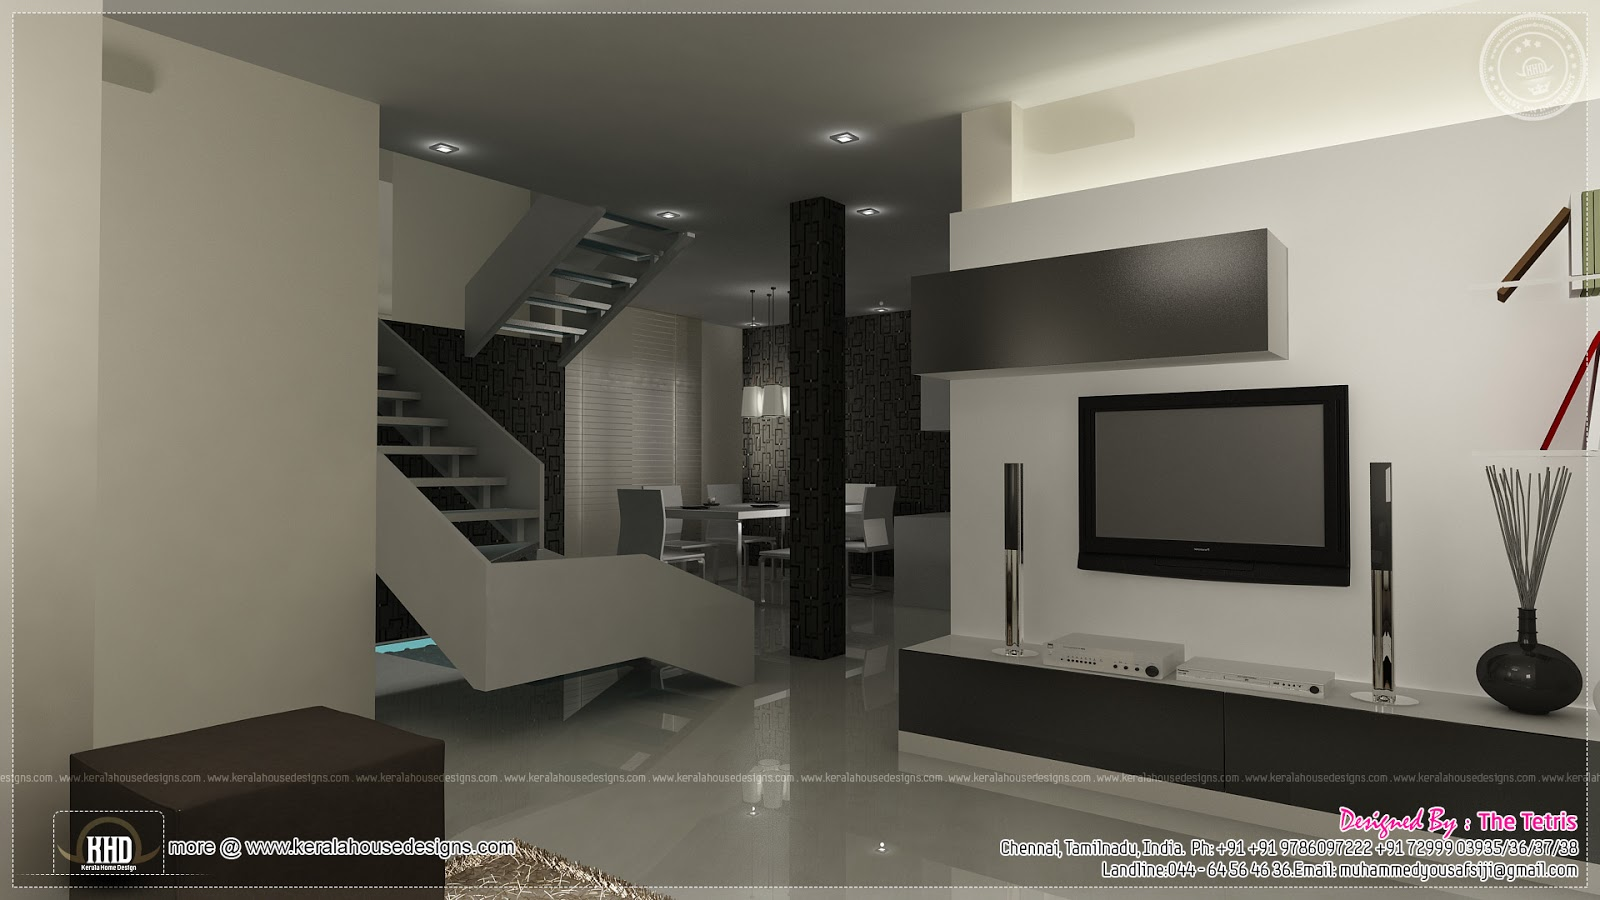 Interior design renderings by tetris architects chennai for House interior design pictures